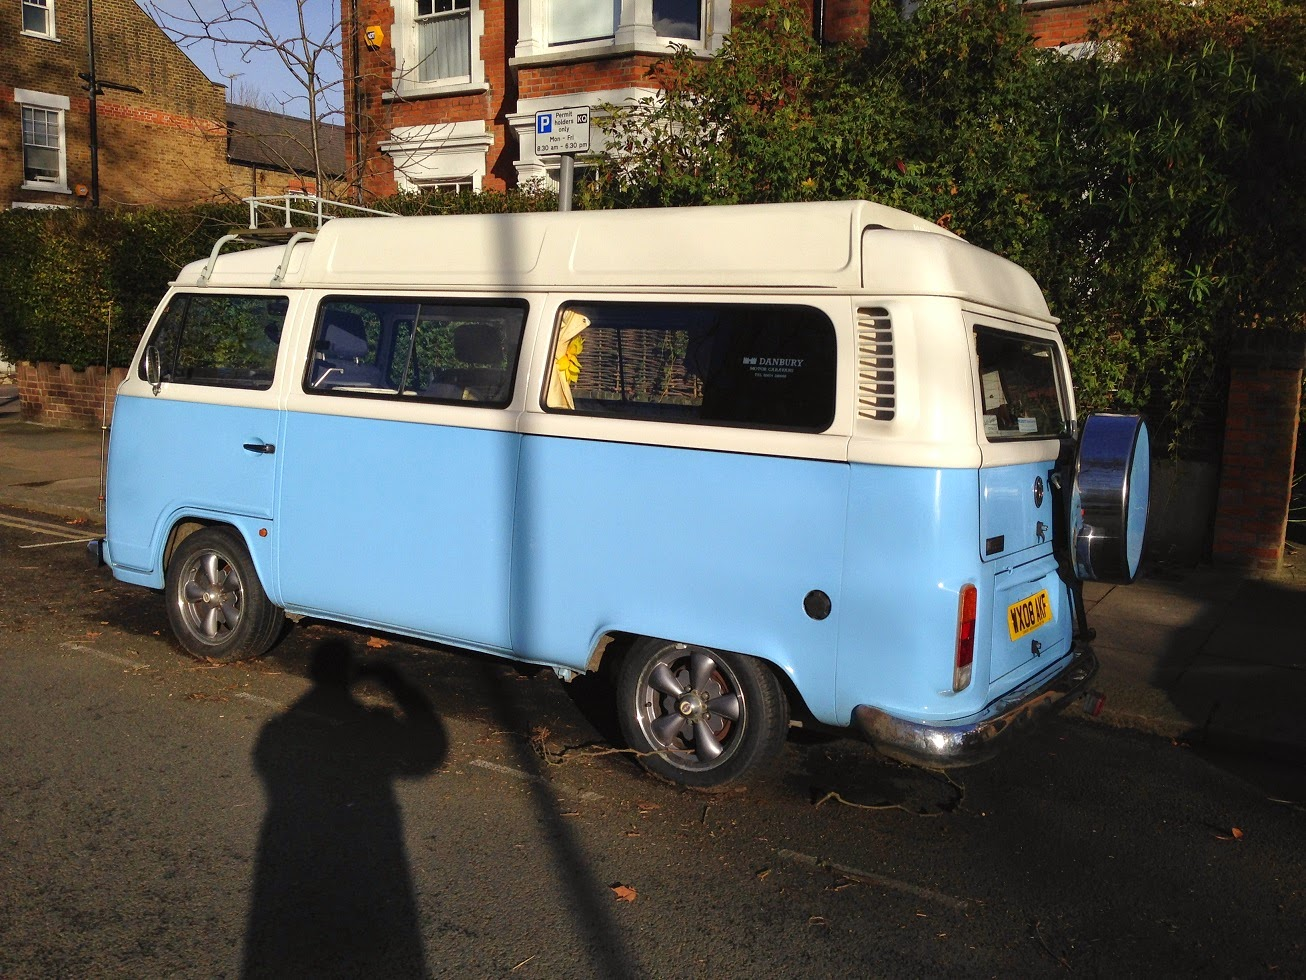 Old VW Campervan, Queen's Park, London